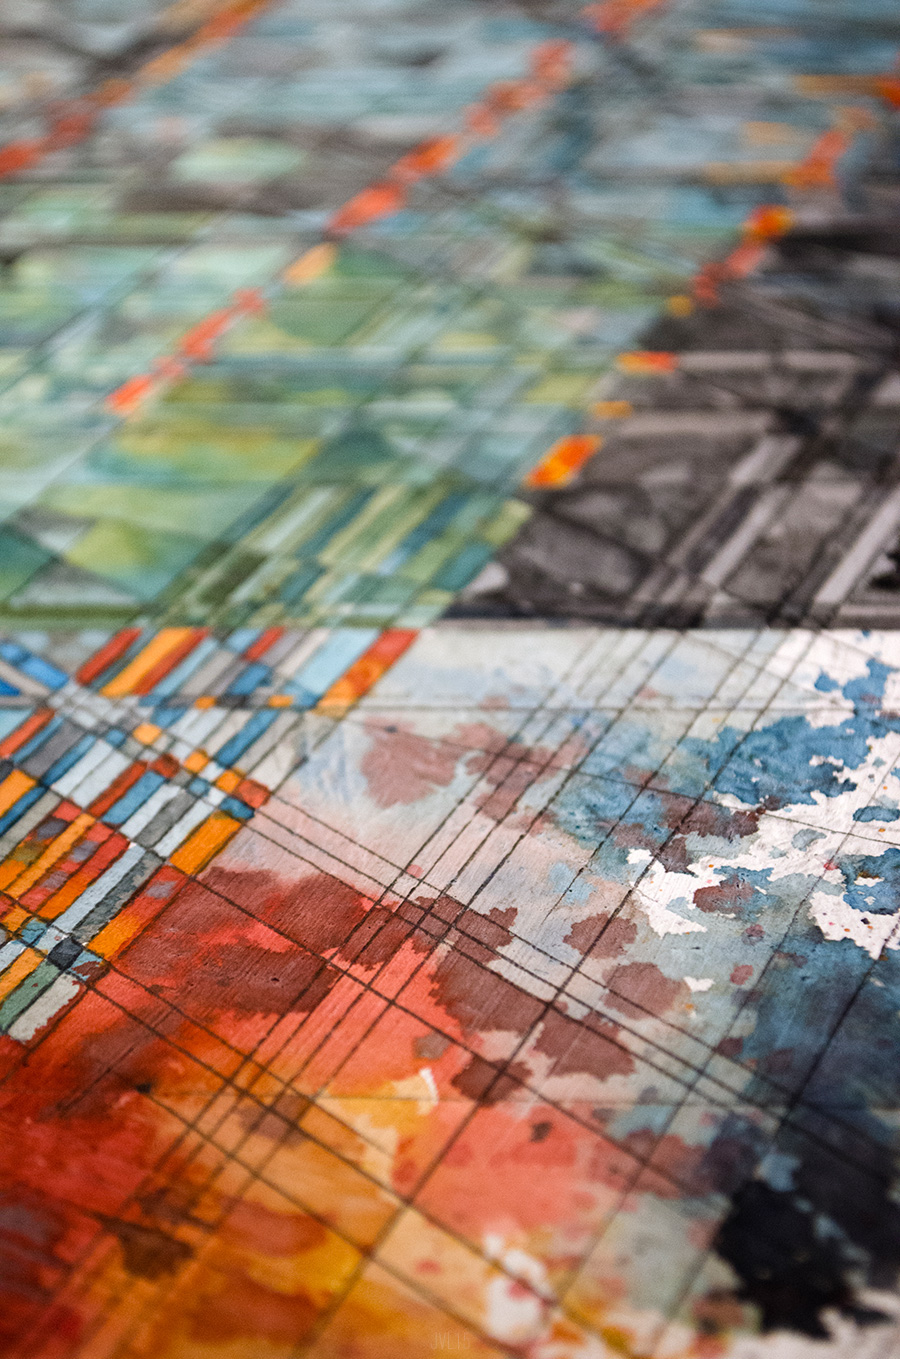 explosions in the SKY jacob van loon rockford Dekalb chicago architectural geometric textural abstraction colorful color texture detailed temporary residence record